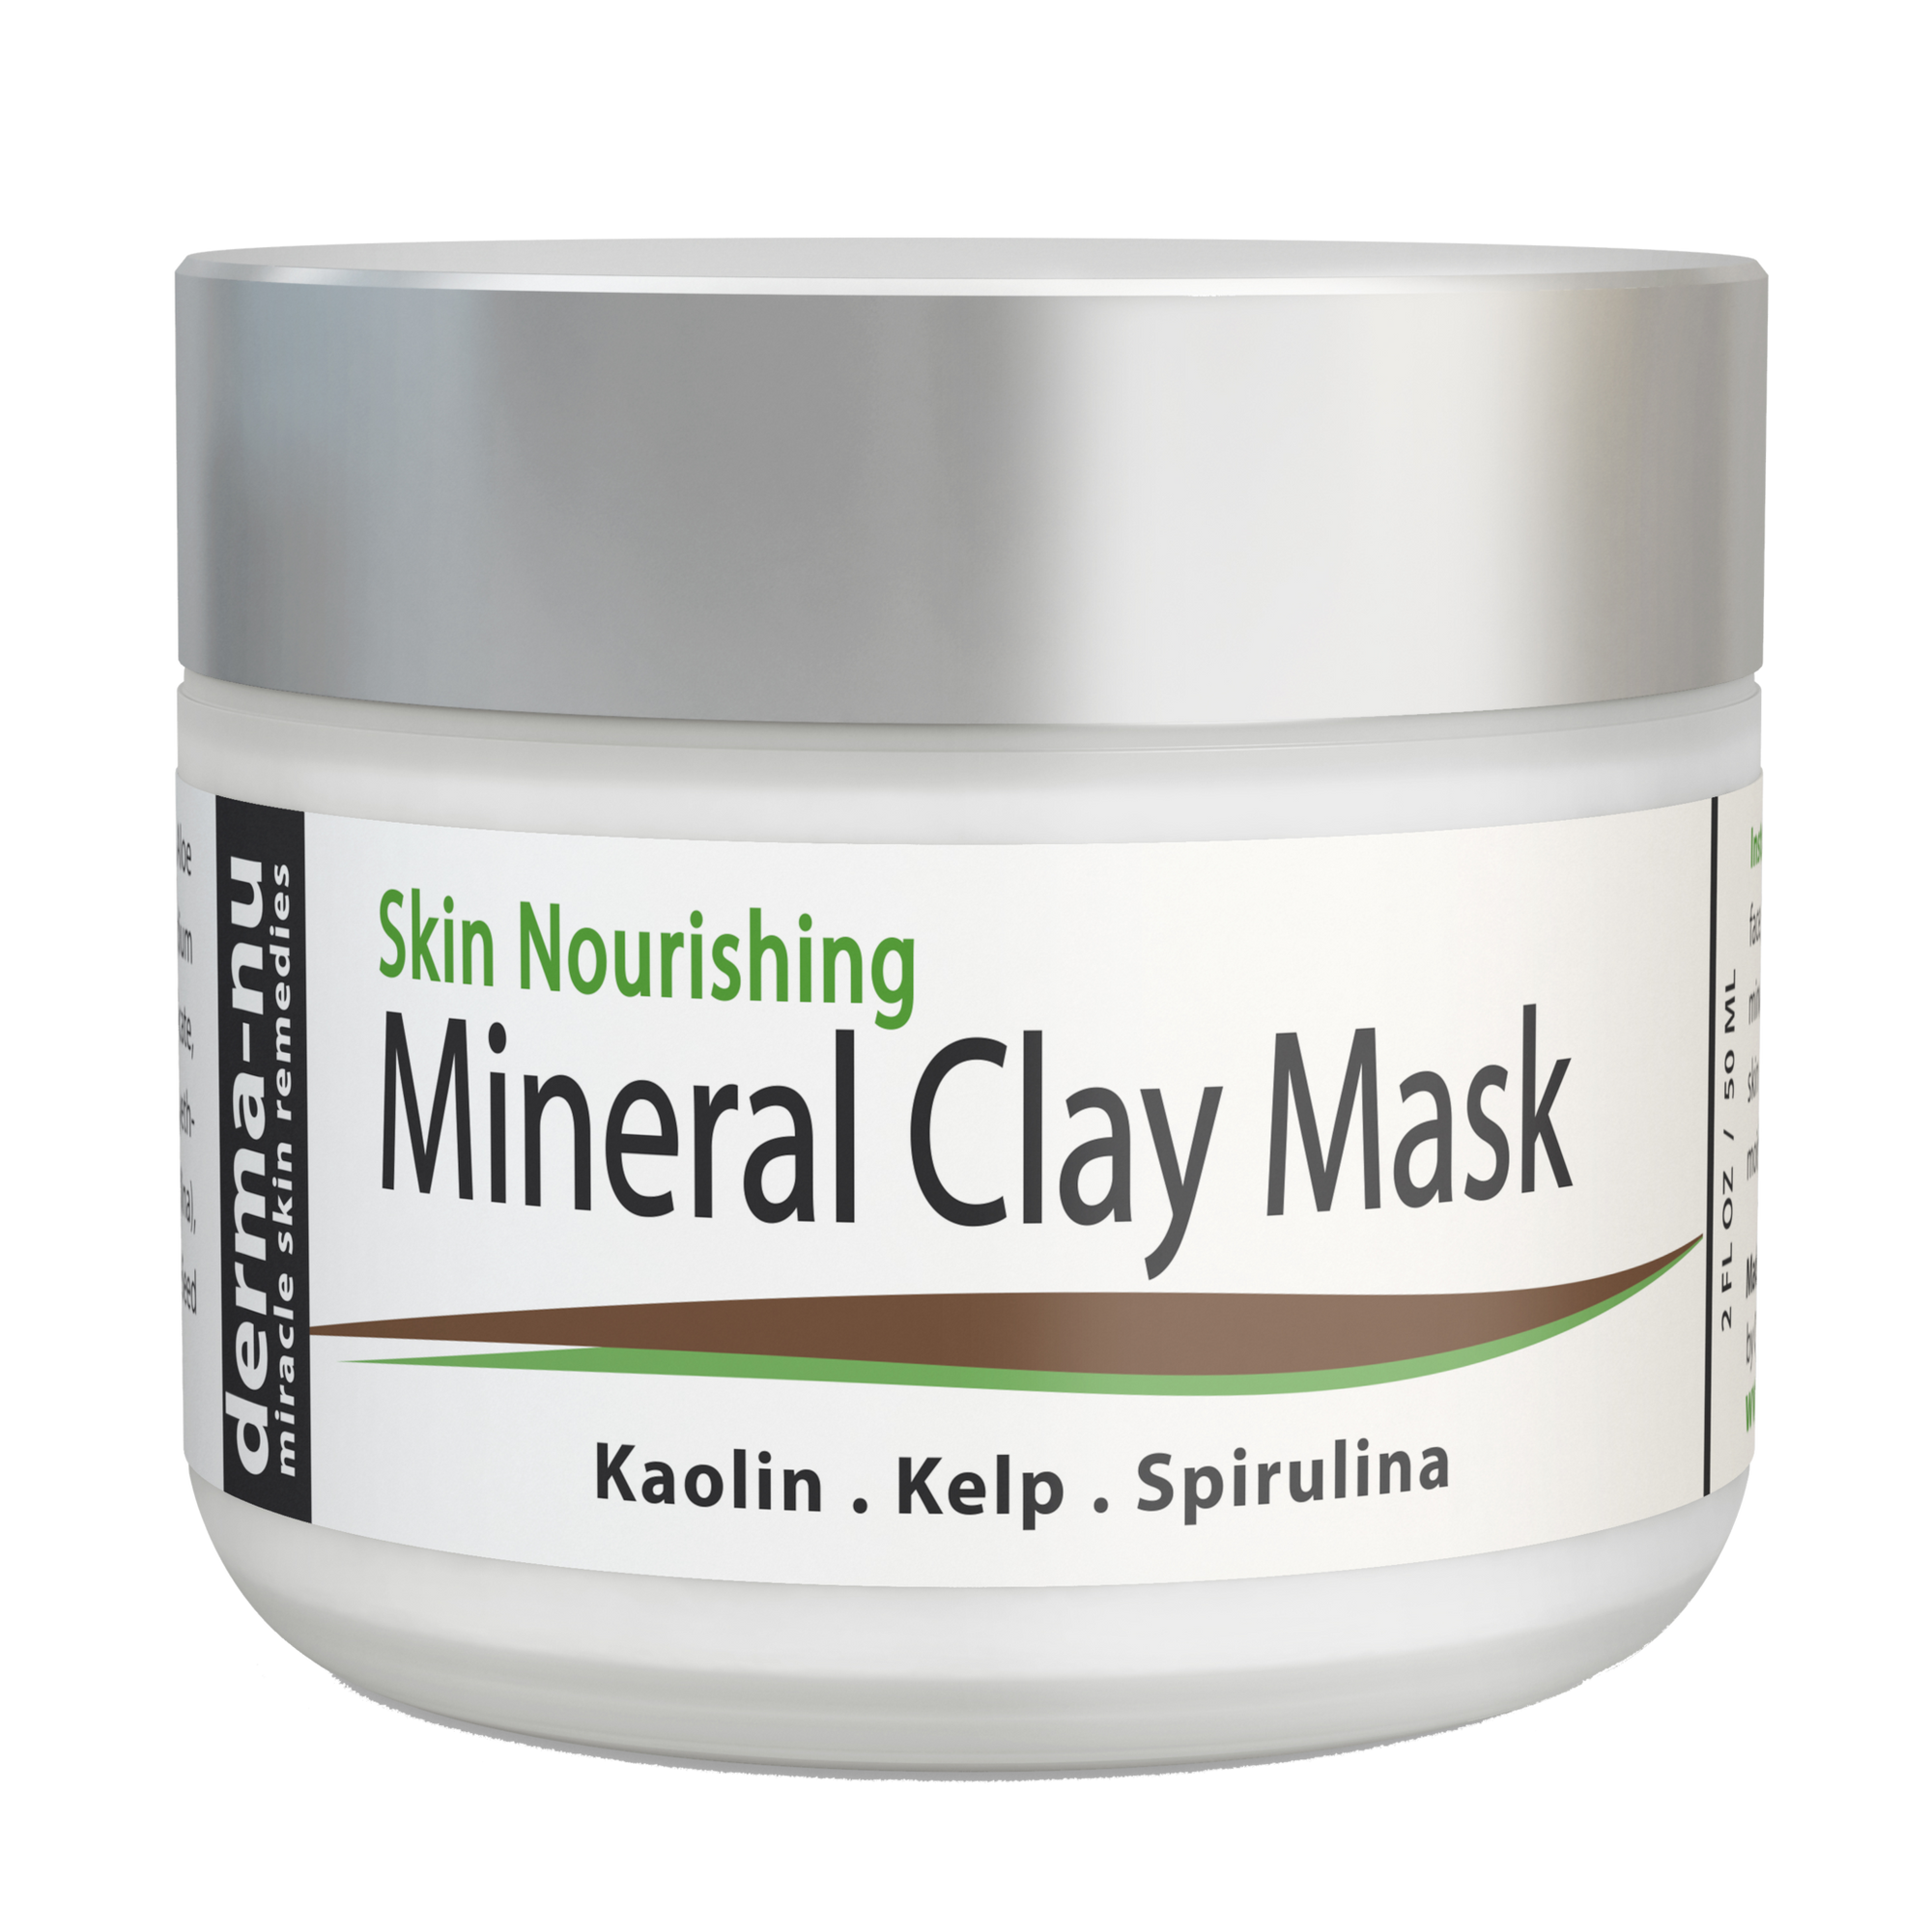 Mineral Clay Mask is Effective on all Skin Types